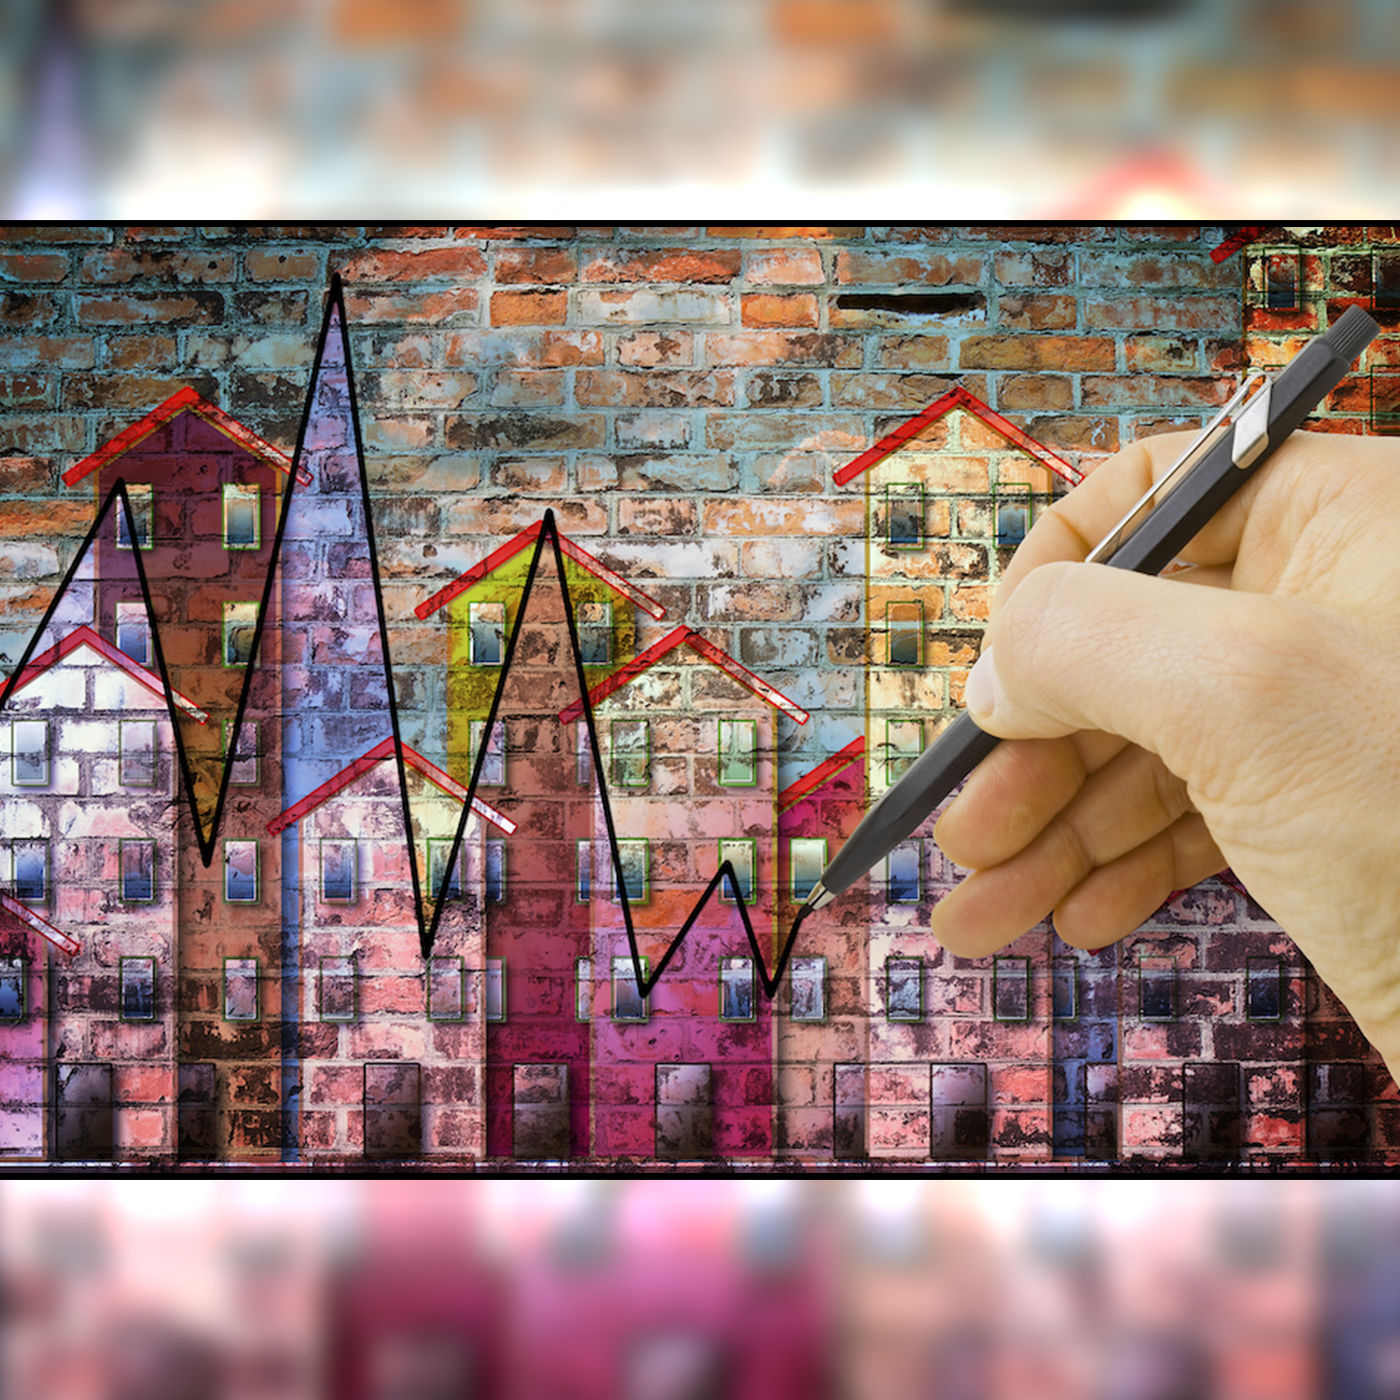 U.S. Cities Experiencing Downward Pressure On Housing Markets